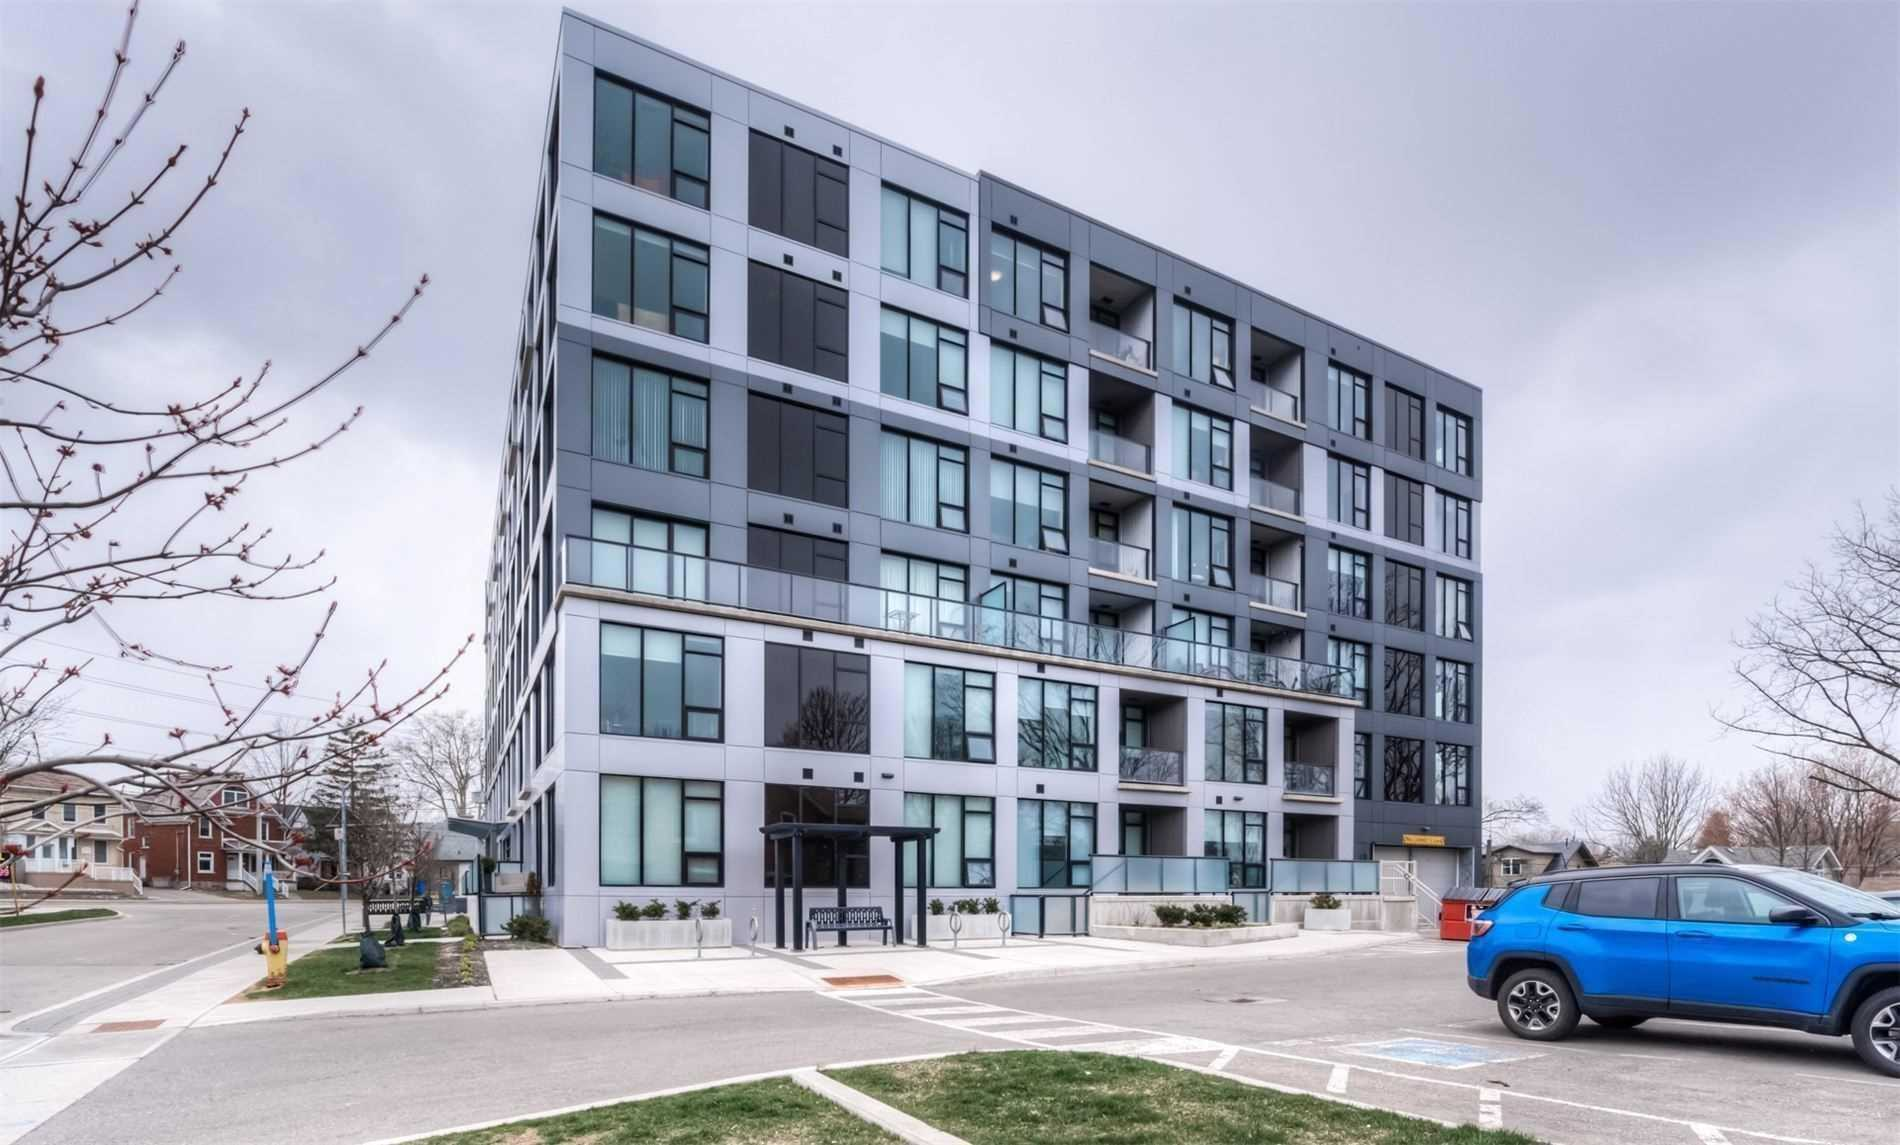 pictures of 690 King St W, Kitchener N2H5L8